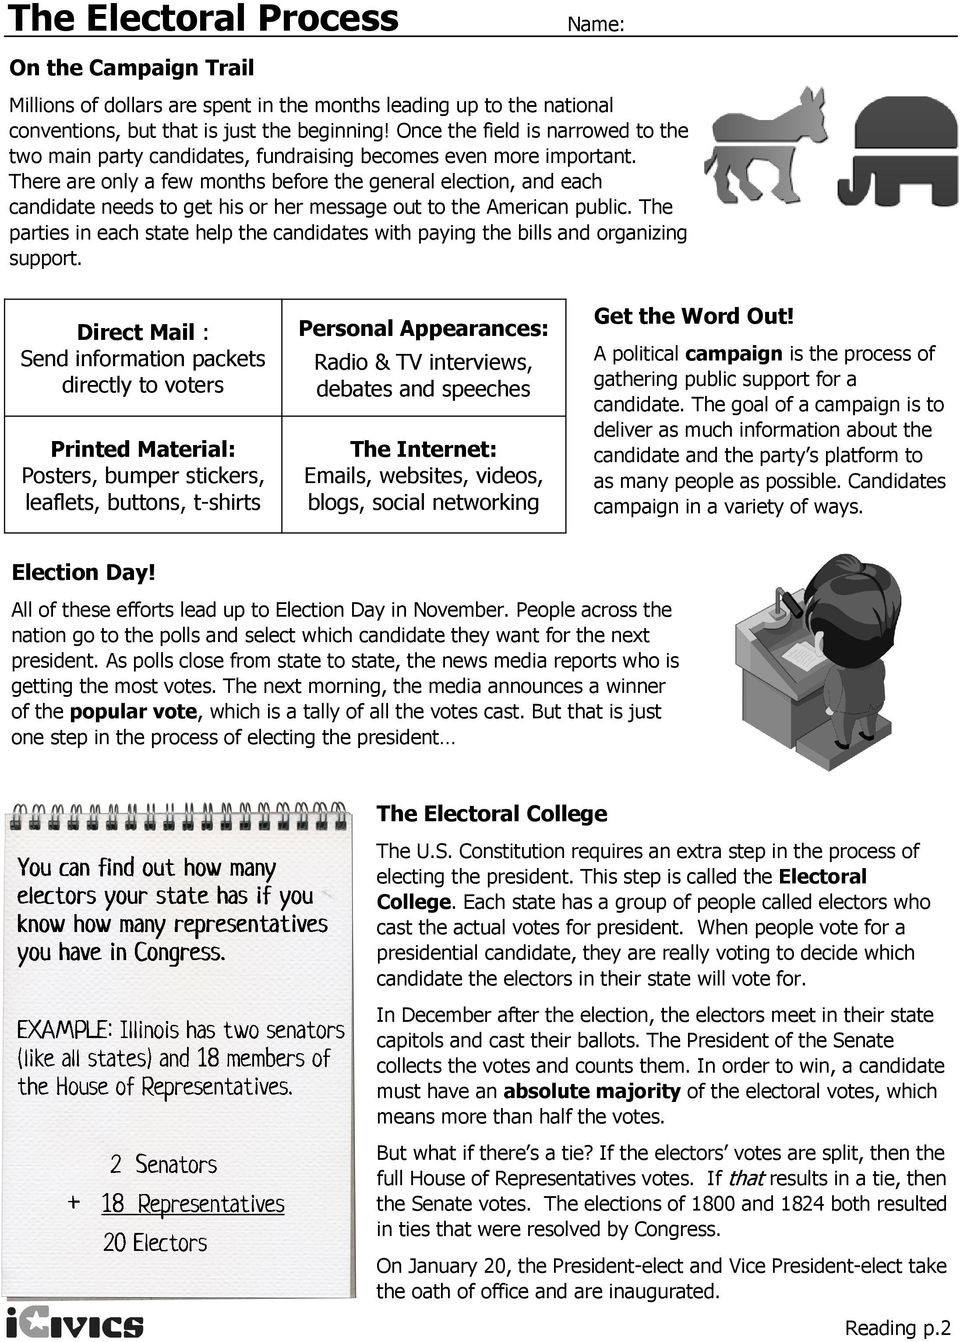 The Electoral Process Worksheet Answers the Electoral Process Step by Step the Worksheet Activity